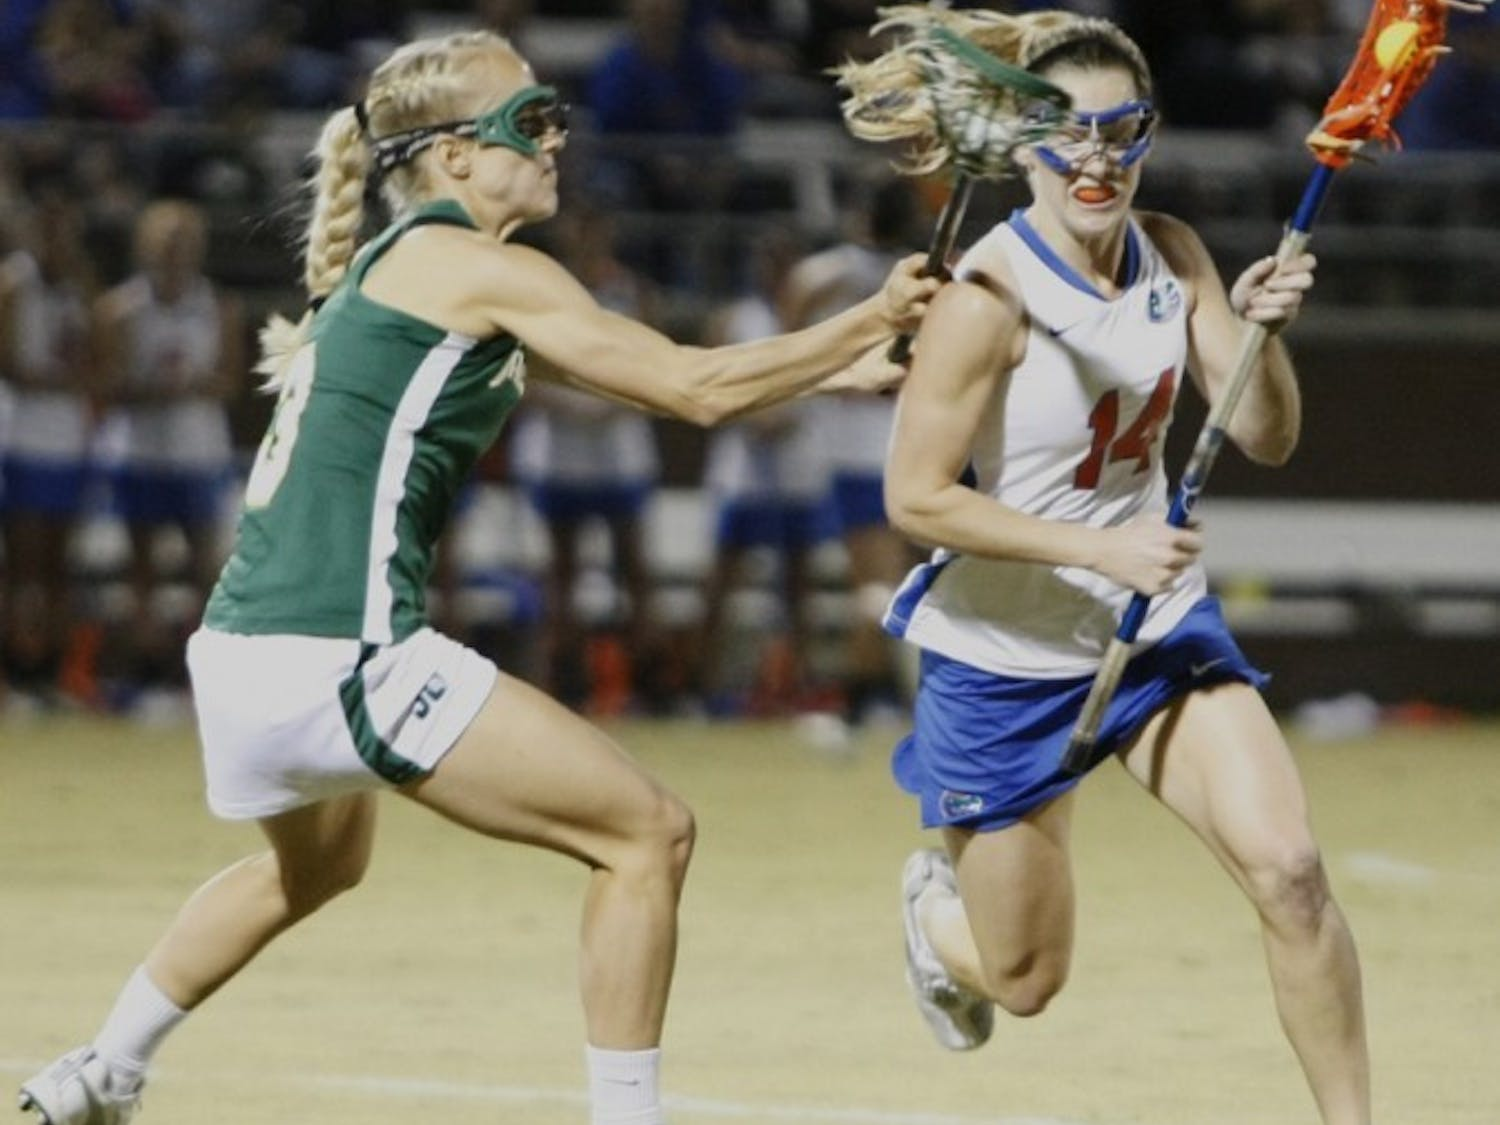 Florida freshman midfielder Nora Barry now leads the team in scoring after notching five goals in the Gators' 14-5 win against Jacksonville in the home opener.